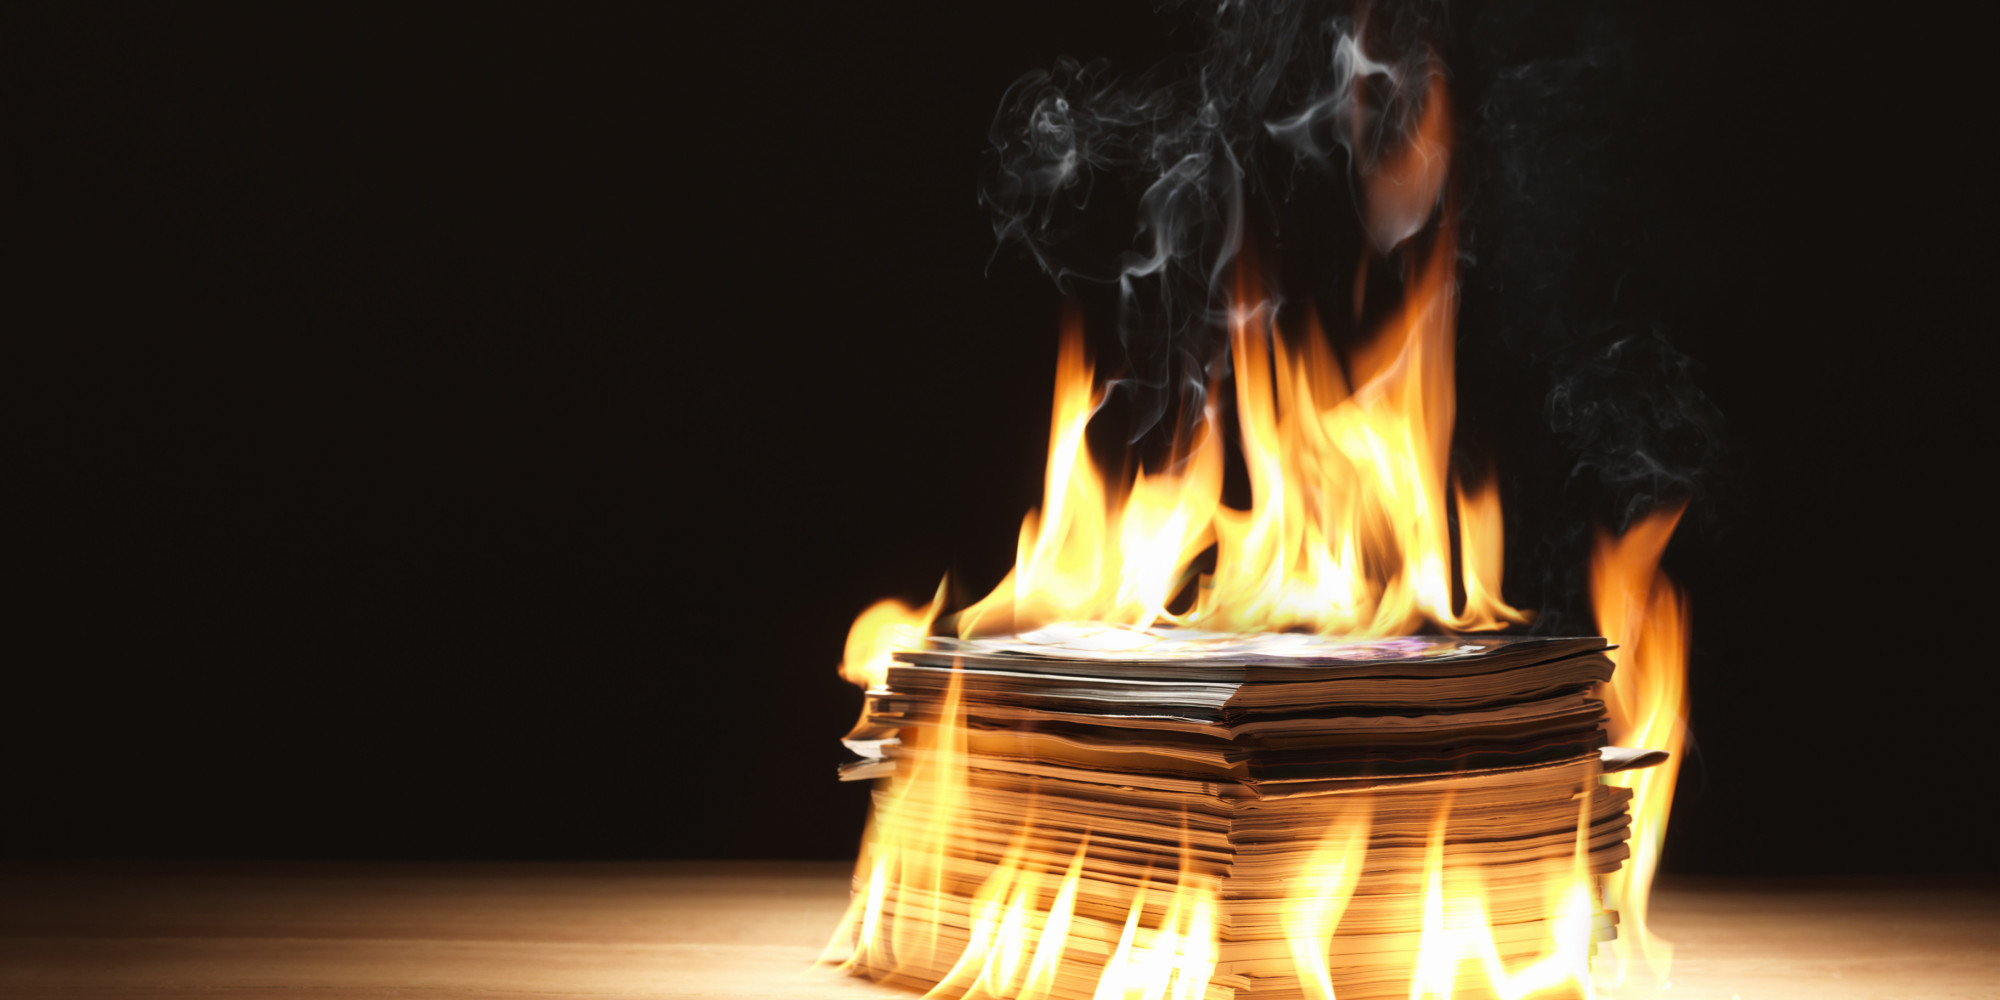 Chilean Artist Francisco Tapia Burns Financial Documents To 'Free' Students From Debt | HuffPost